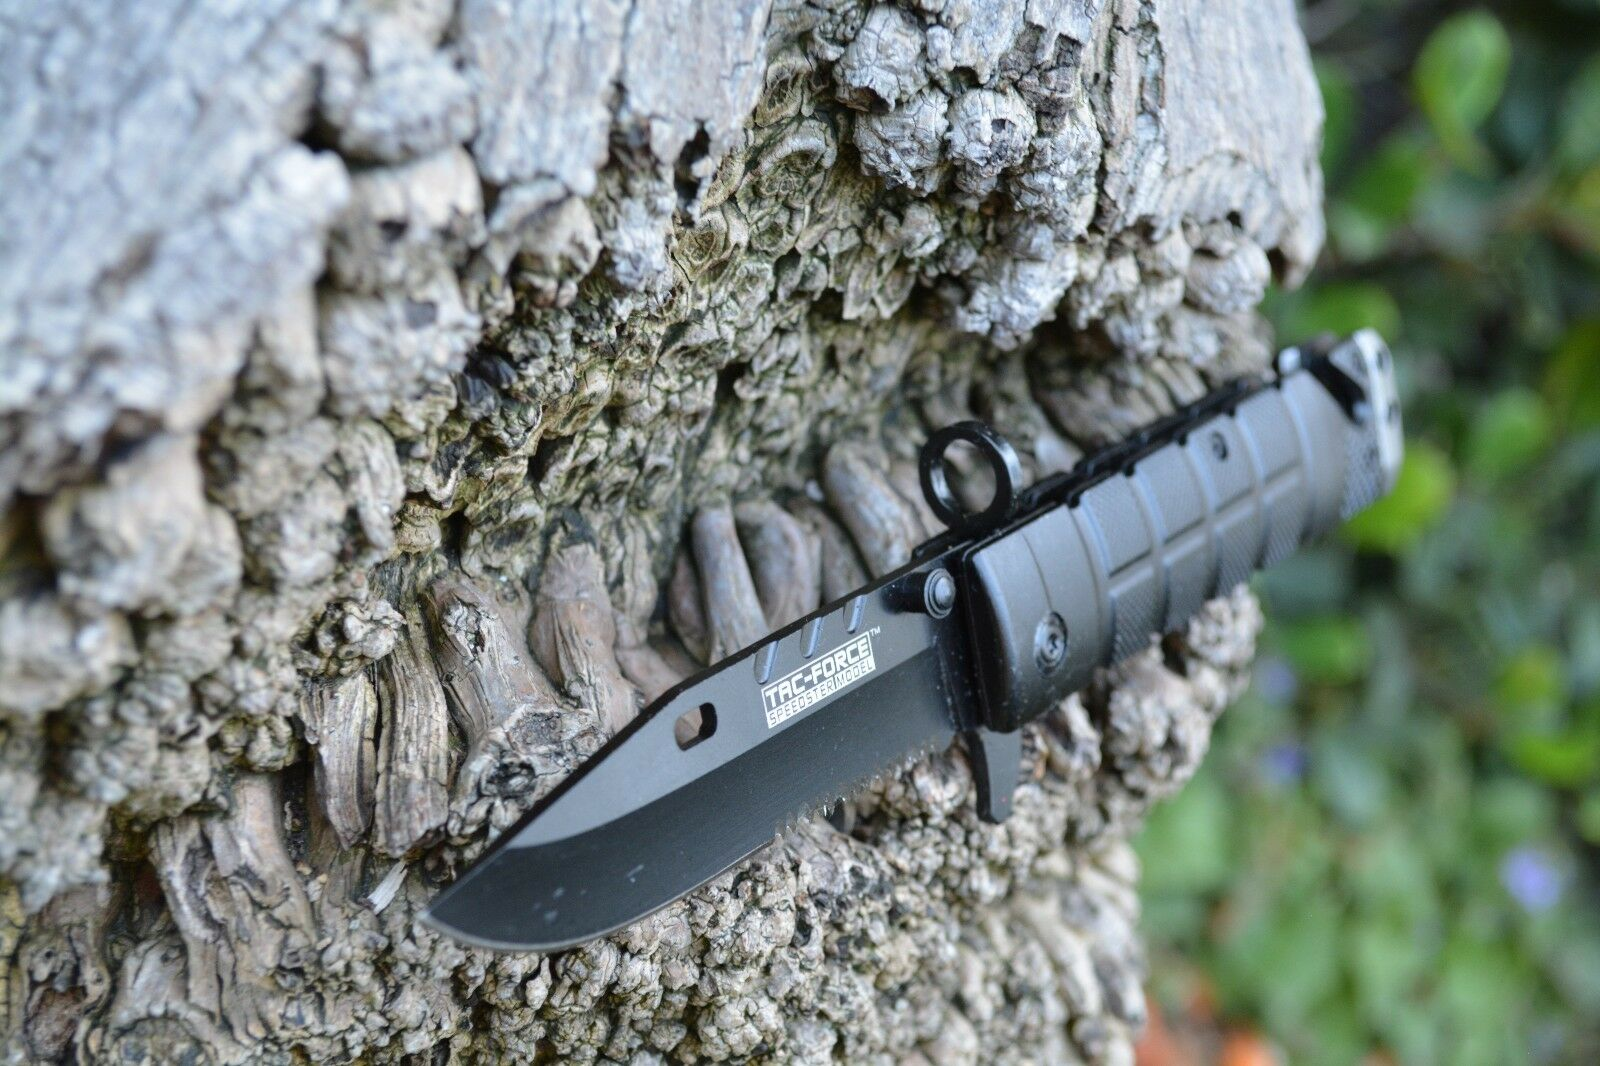 Tac Force Spring Assisted Open Black Bayonet Style Tactical Rescue Pocket Knife